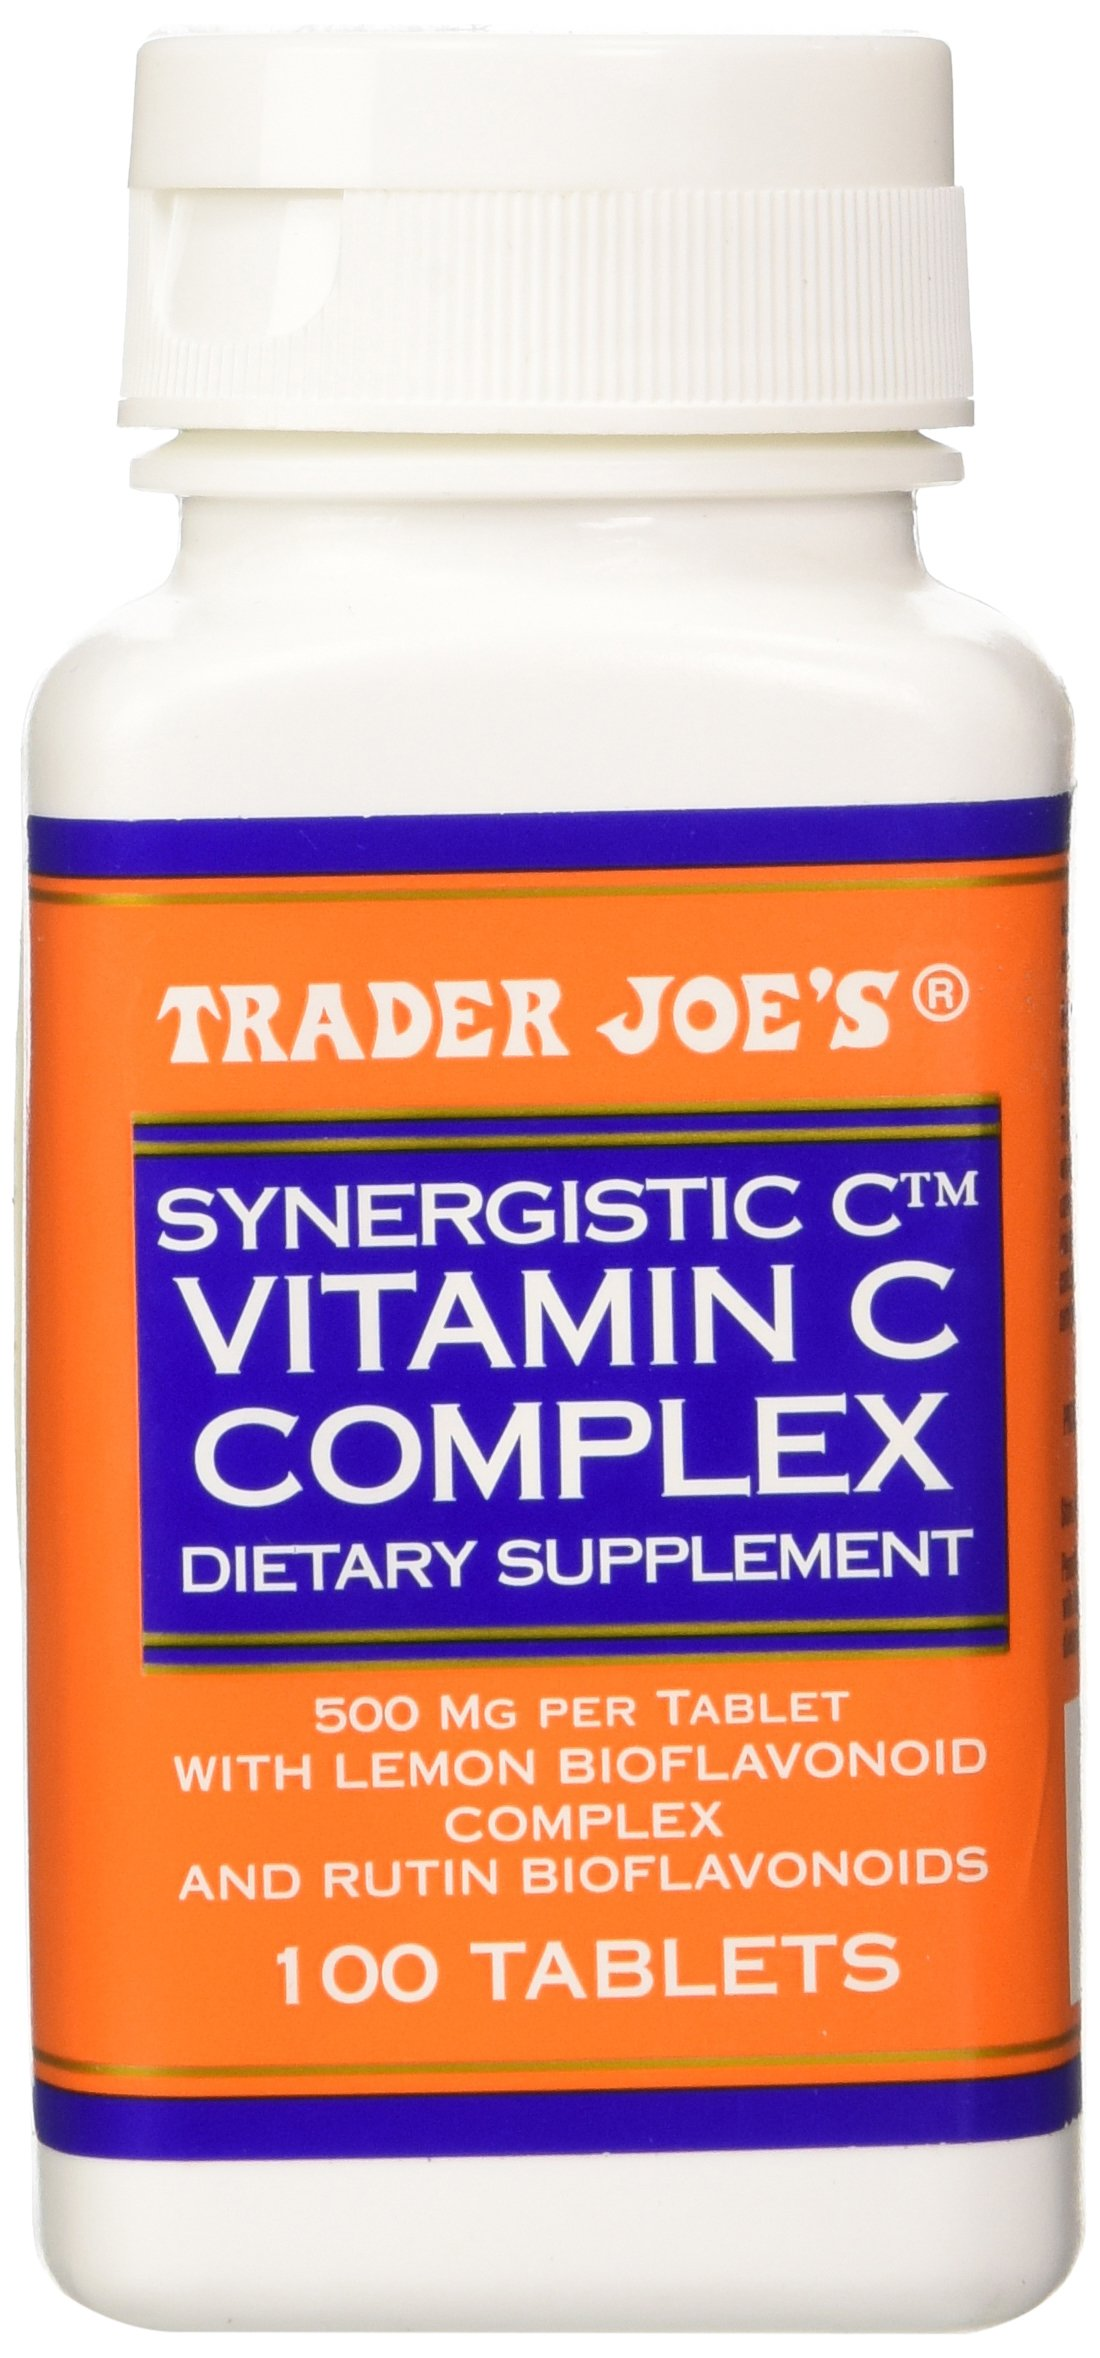 Trader Joe's Synergistic C Vitamin C Complex 500 Mg With Lemon and Rutin Bioflavonoids, 100 Tablets